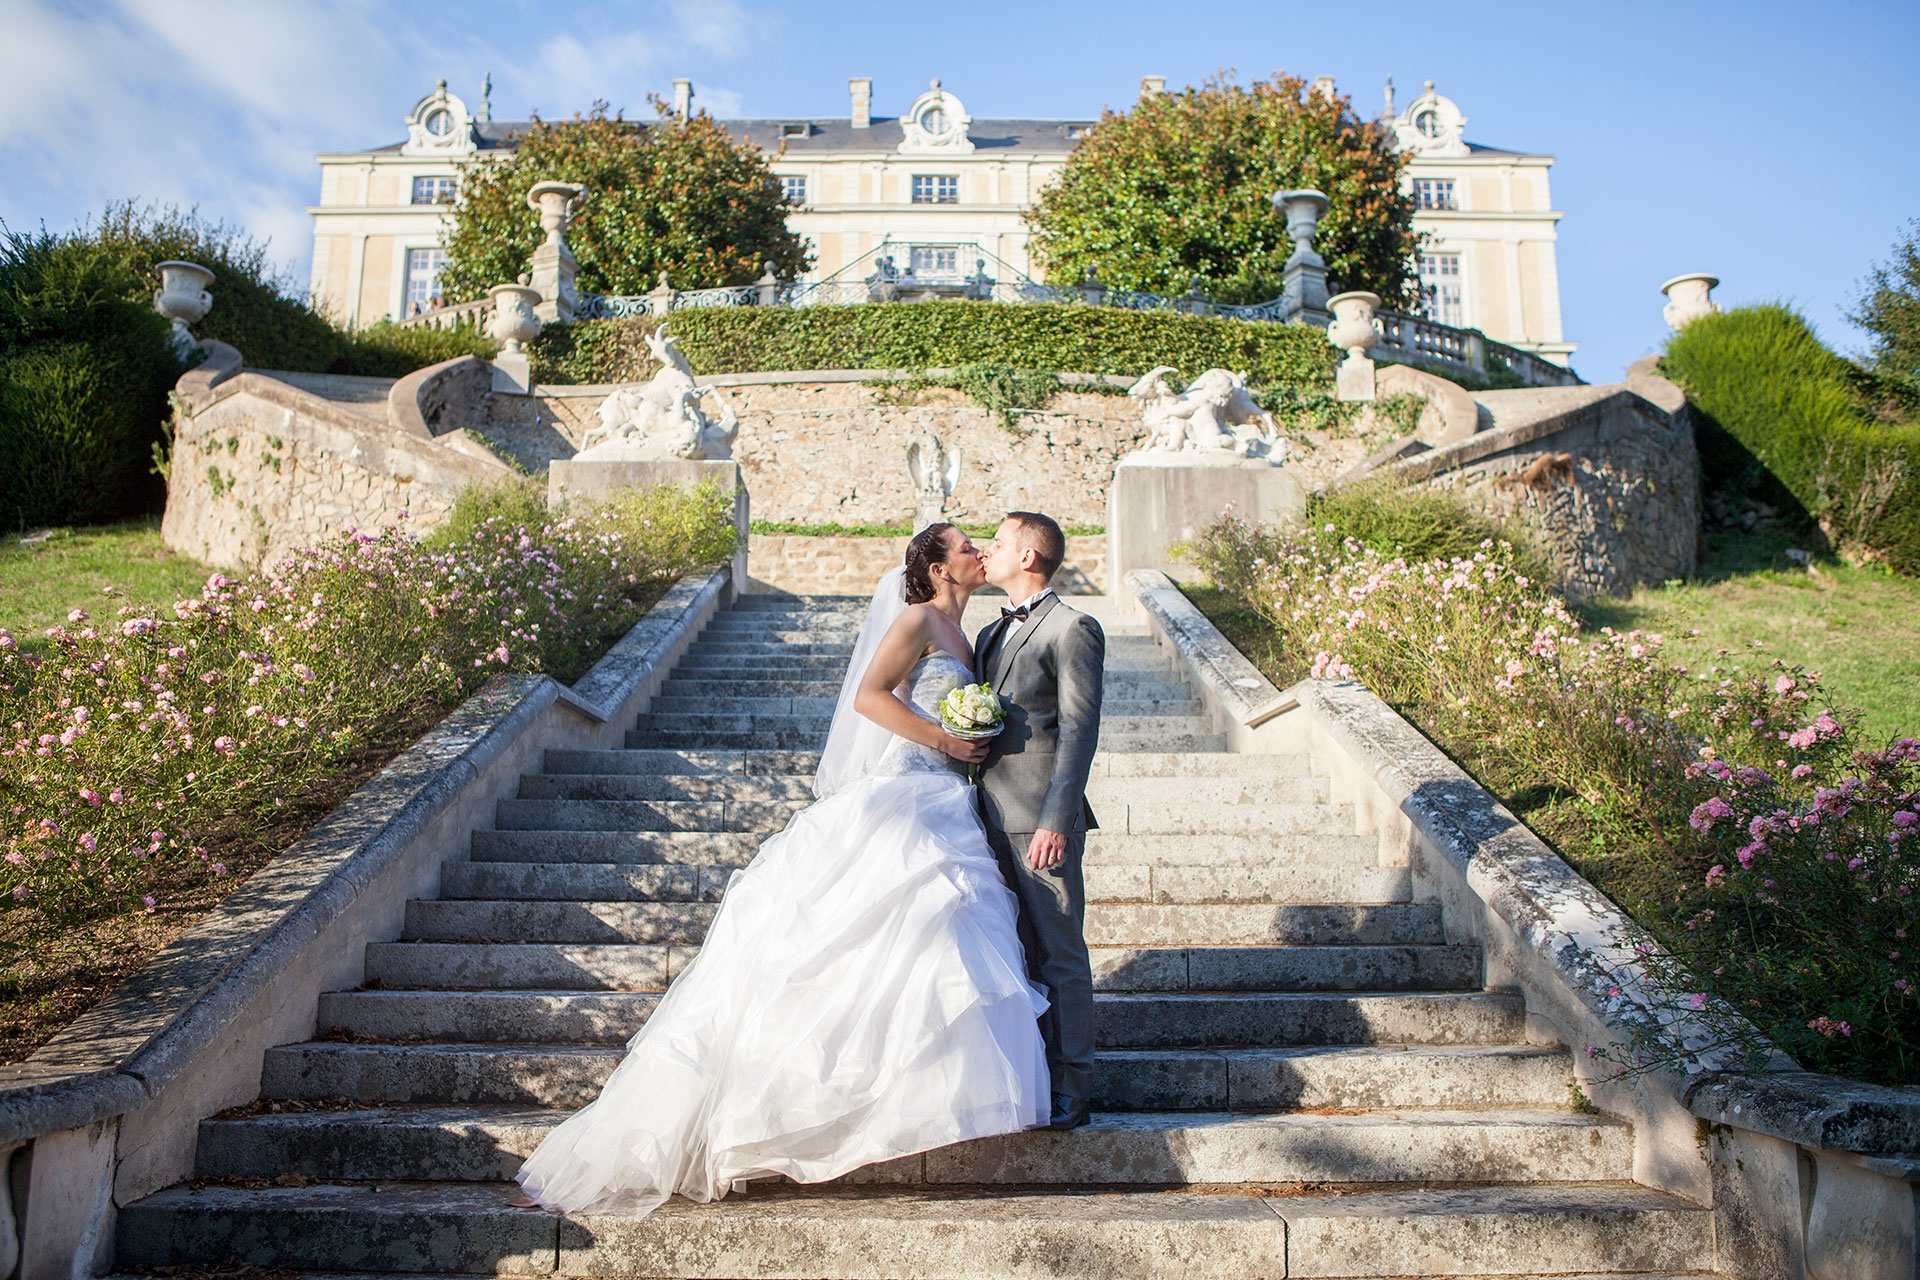 particuliers-mariage-oui-delphineguillaume-44